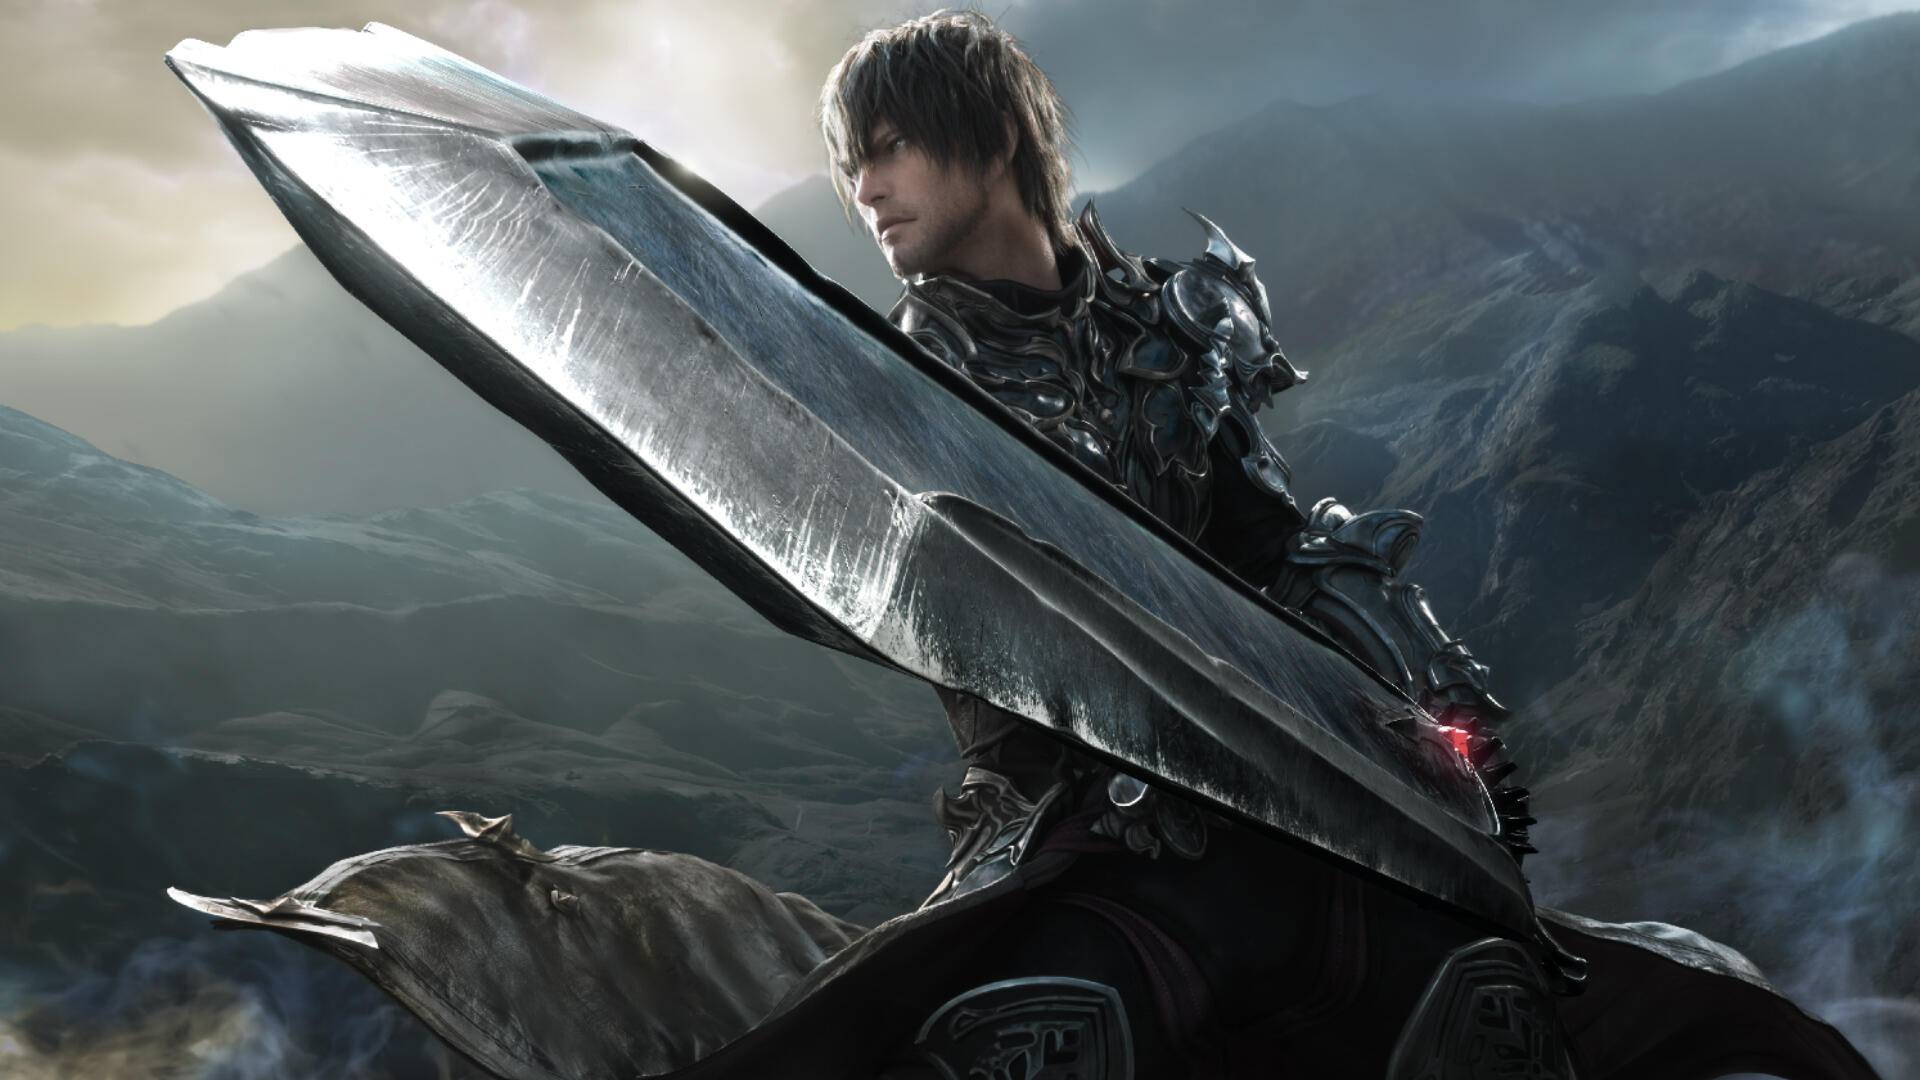 Final Fantasy 14 Director Explains Why A Visual Upgrade Won't Happen Anytime Soon